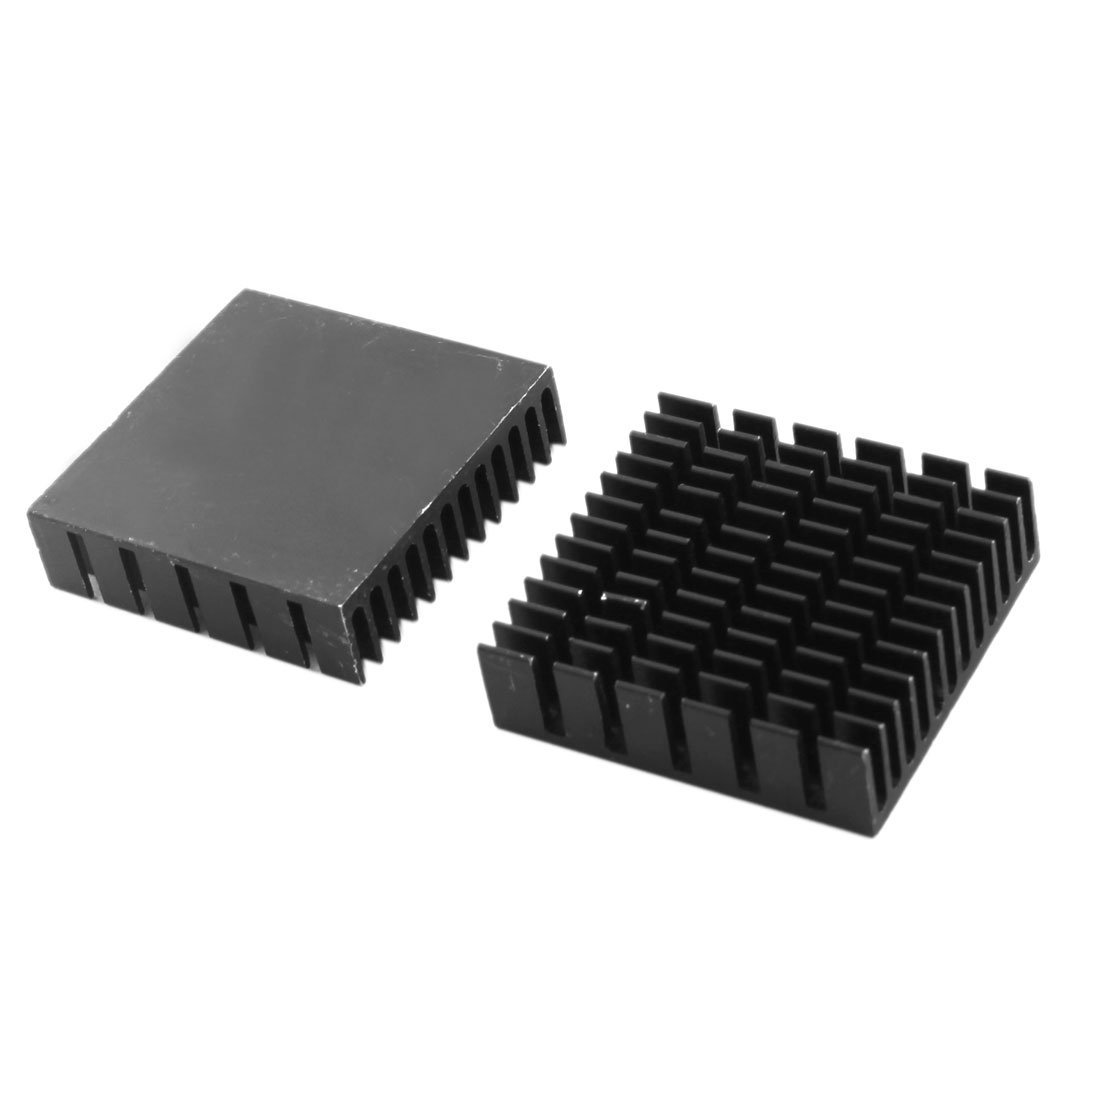 2pcs 40mm x 11mm x 40mm Black Aluminum Chipset Heat Diffuse Cooler Cooling Fin Heatsink for PCB Board